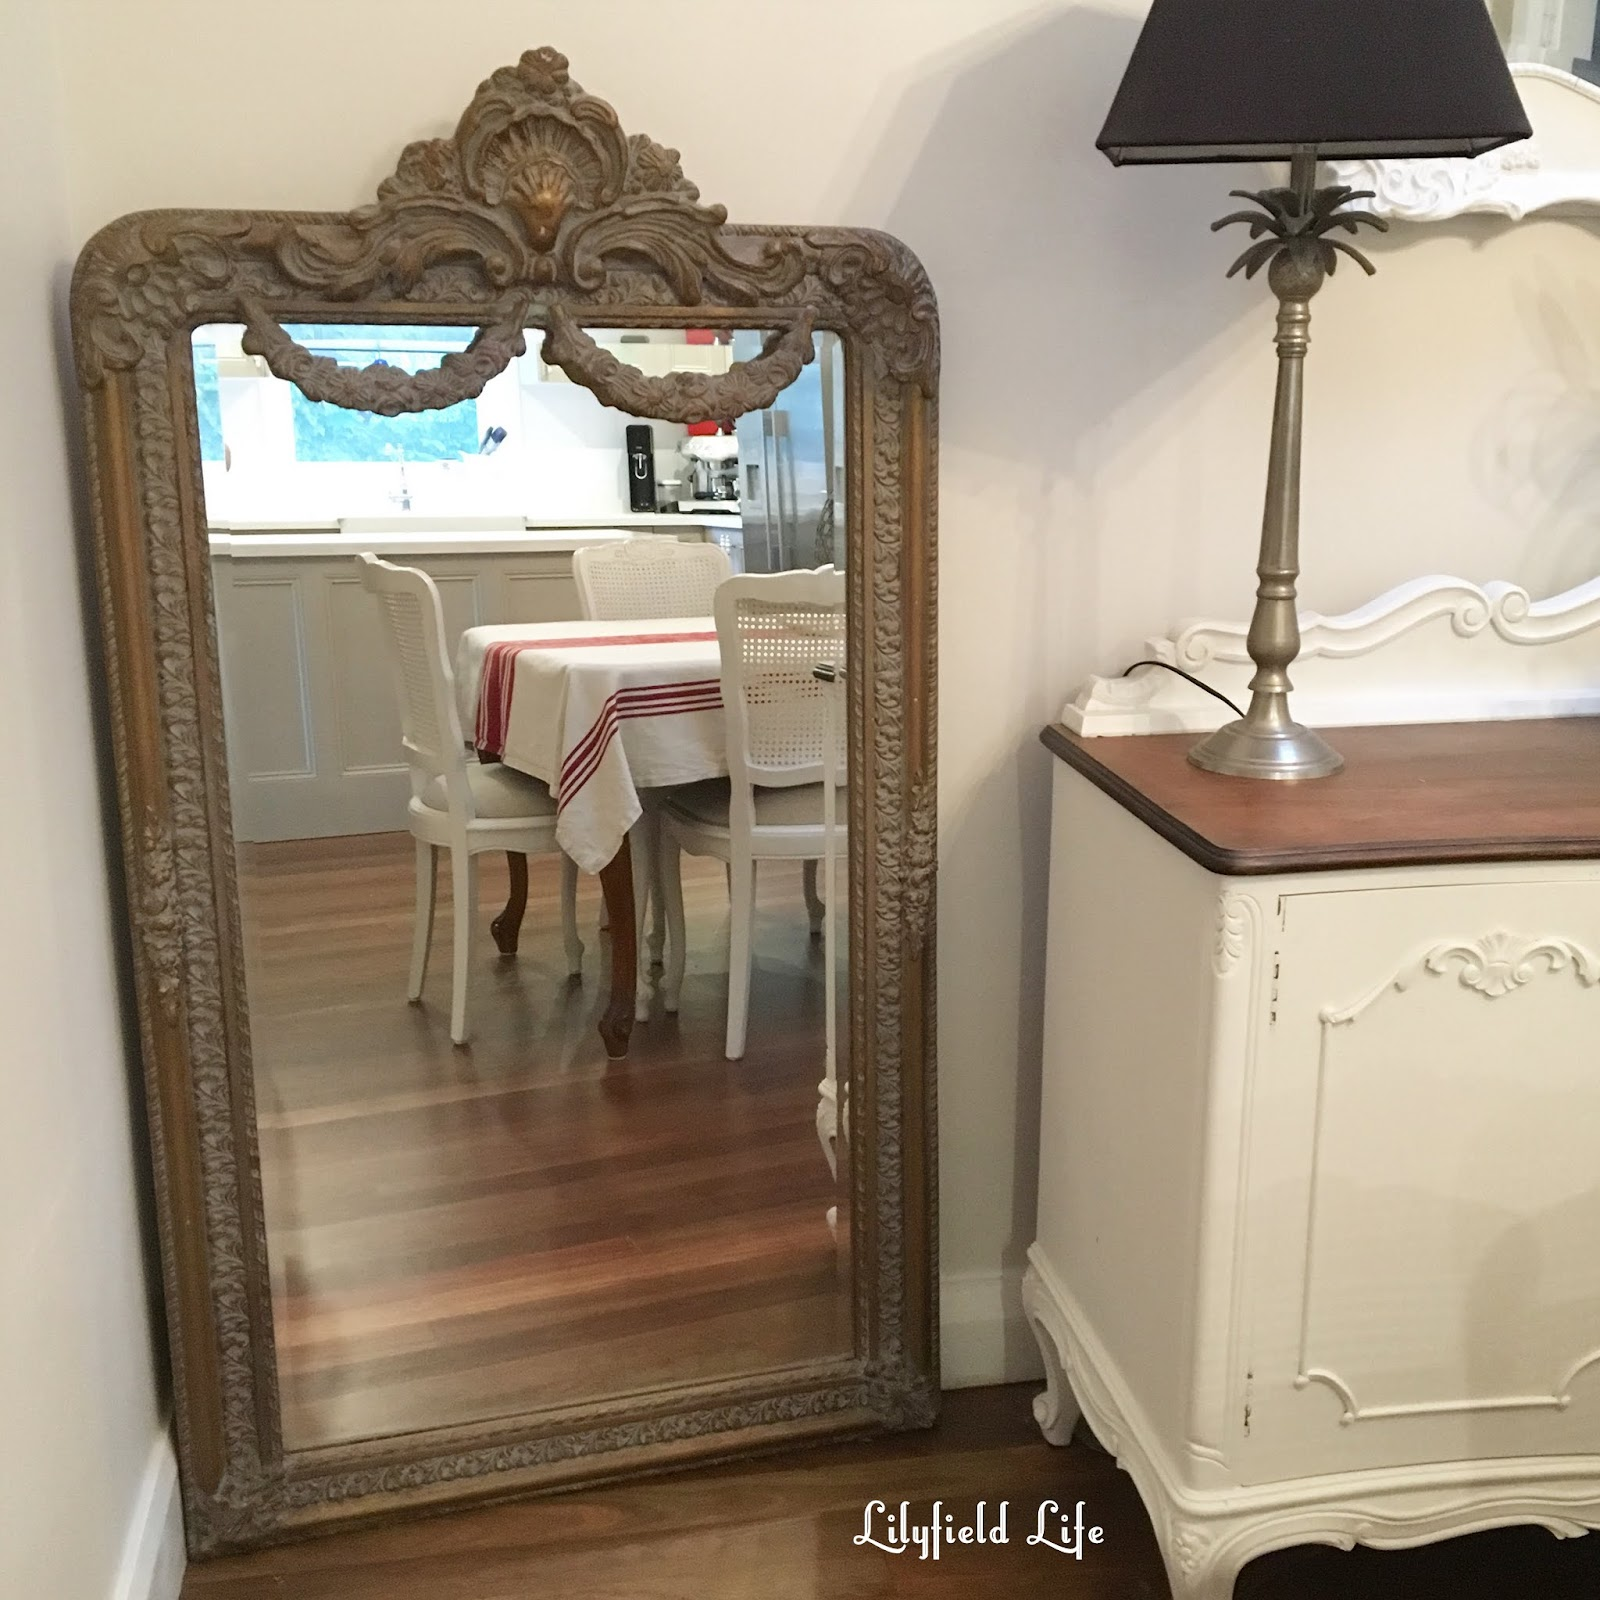 Ideal It us an antique french mirror and I am in love with it I have plans to hang it in our upstairs hallway in the meantime it can sit in the corner of my